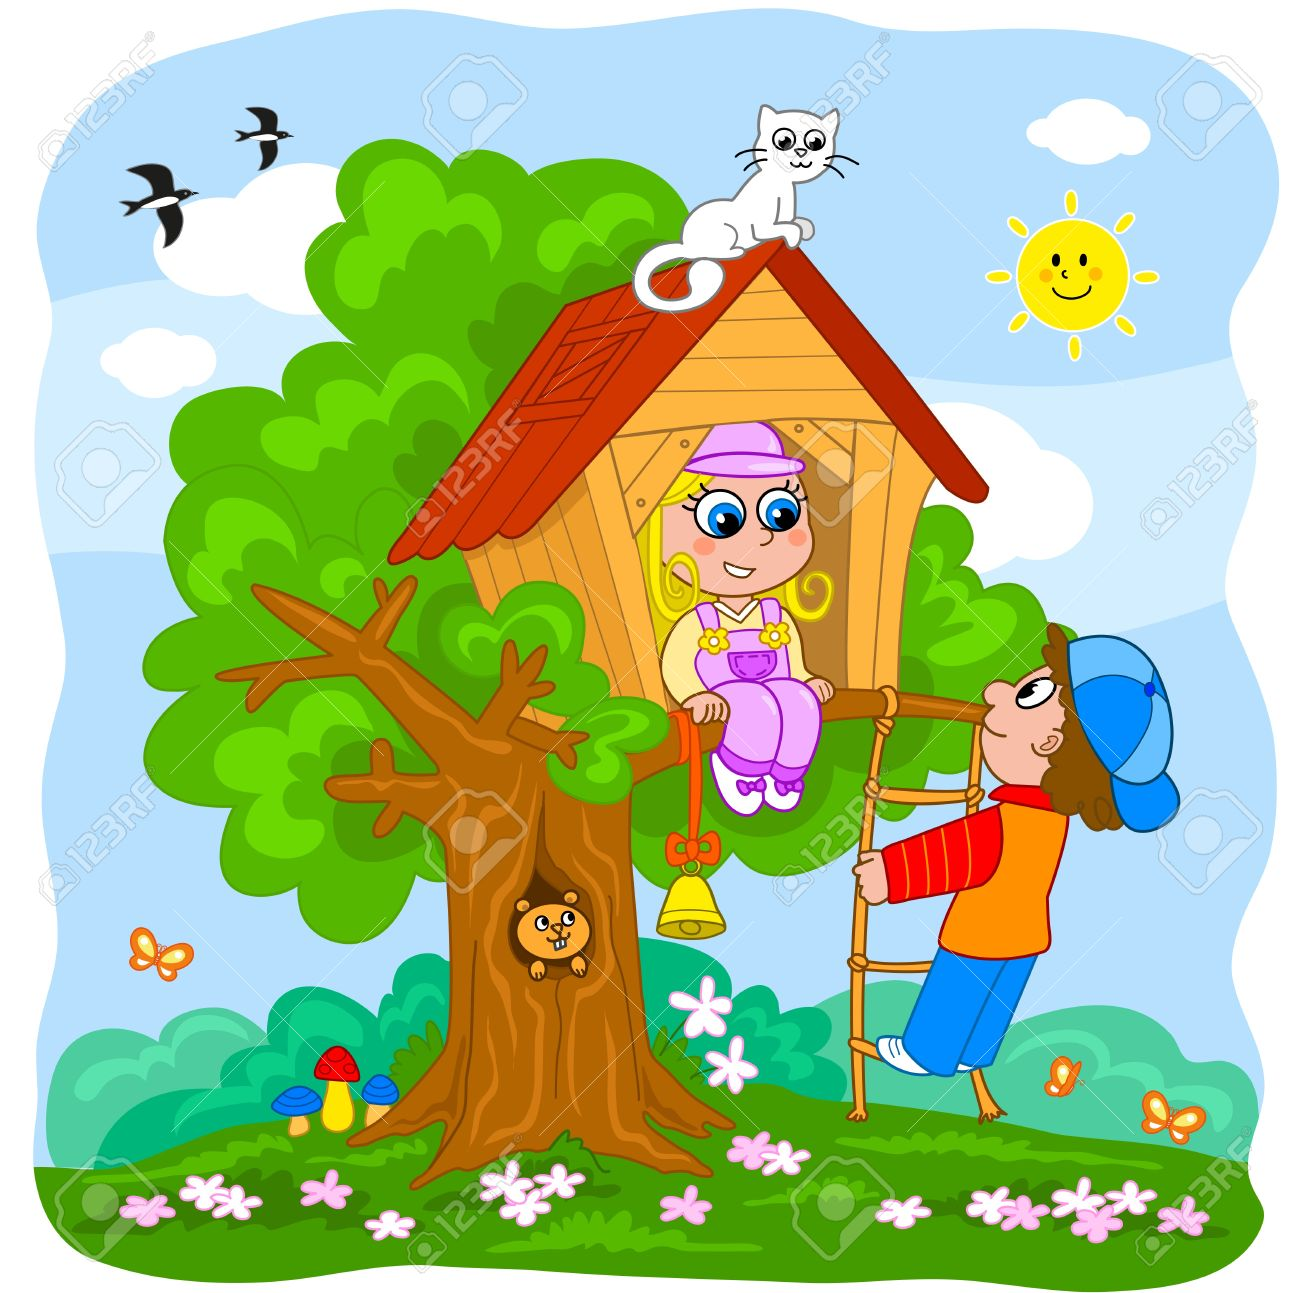 vector young boy and girl playing in a tree house cartoon illustration for little kids treehouse inside31 inside